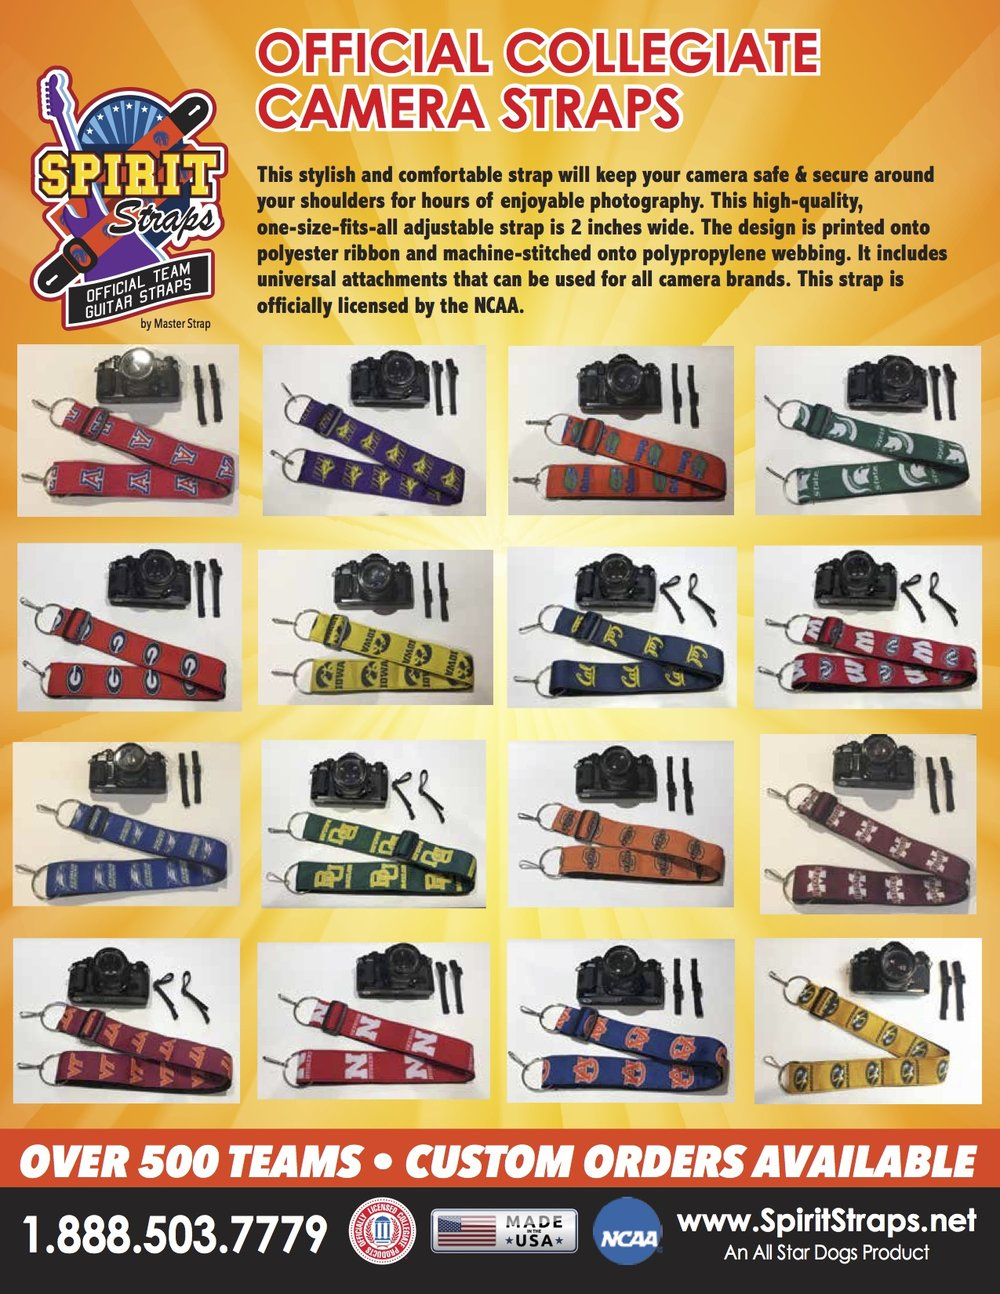 Spirit Strap DBL Sided Flyer 2018 copy 2.jpg